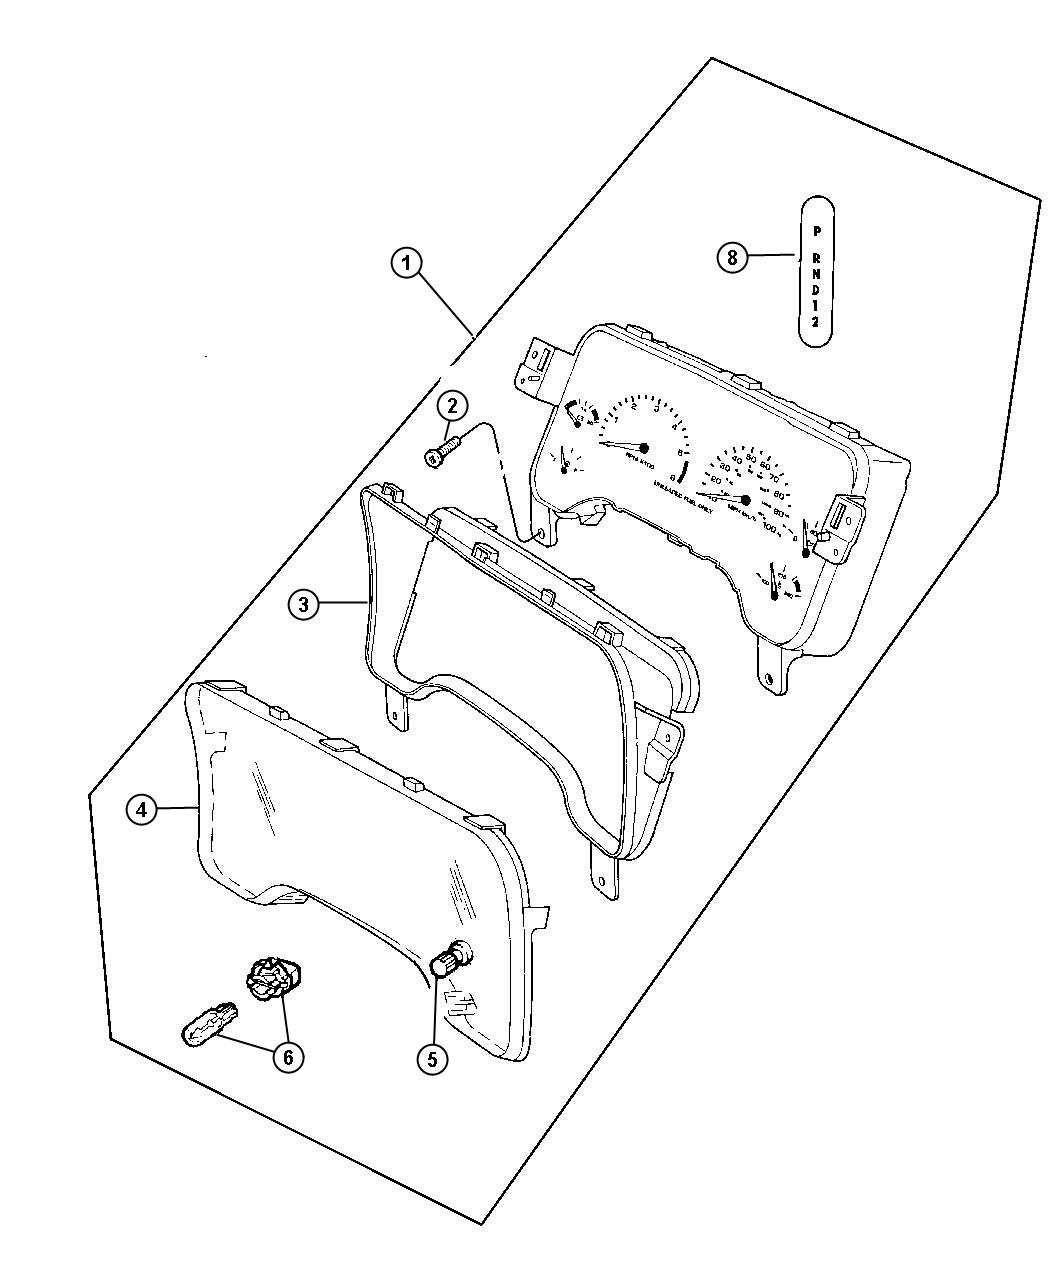 Dodge Dakota Indicator. Gear selector, prndl. Automatic